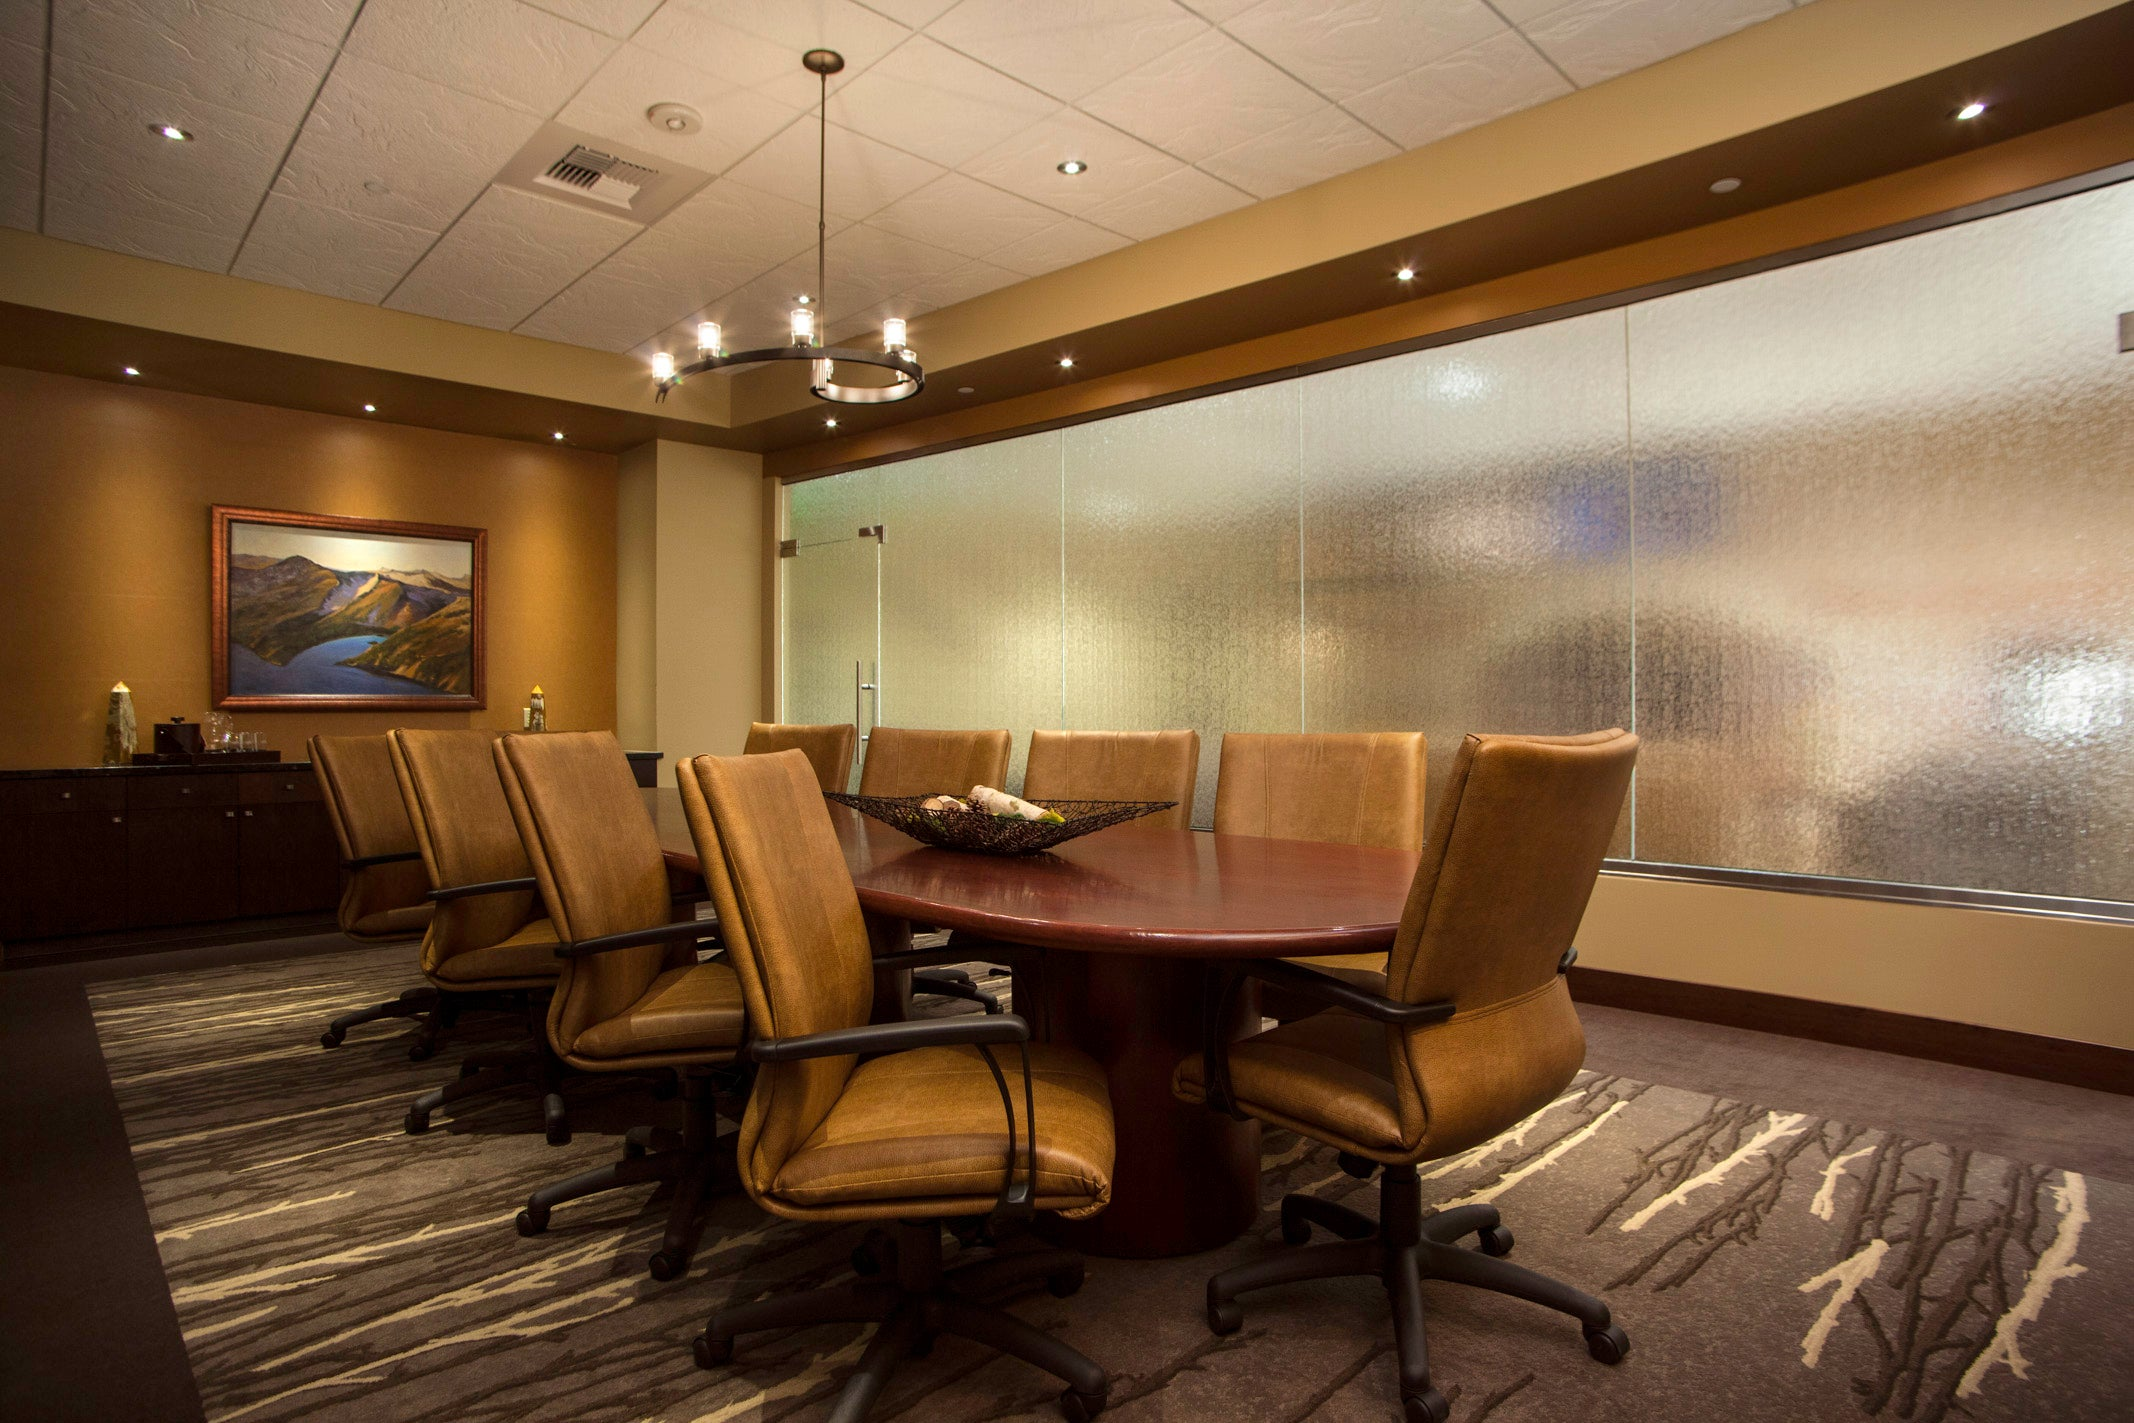 FBO conference room interior